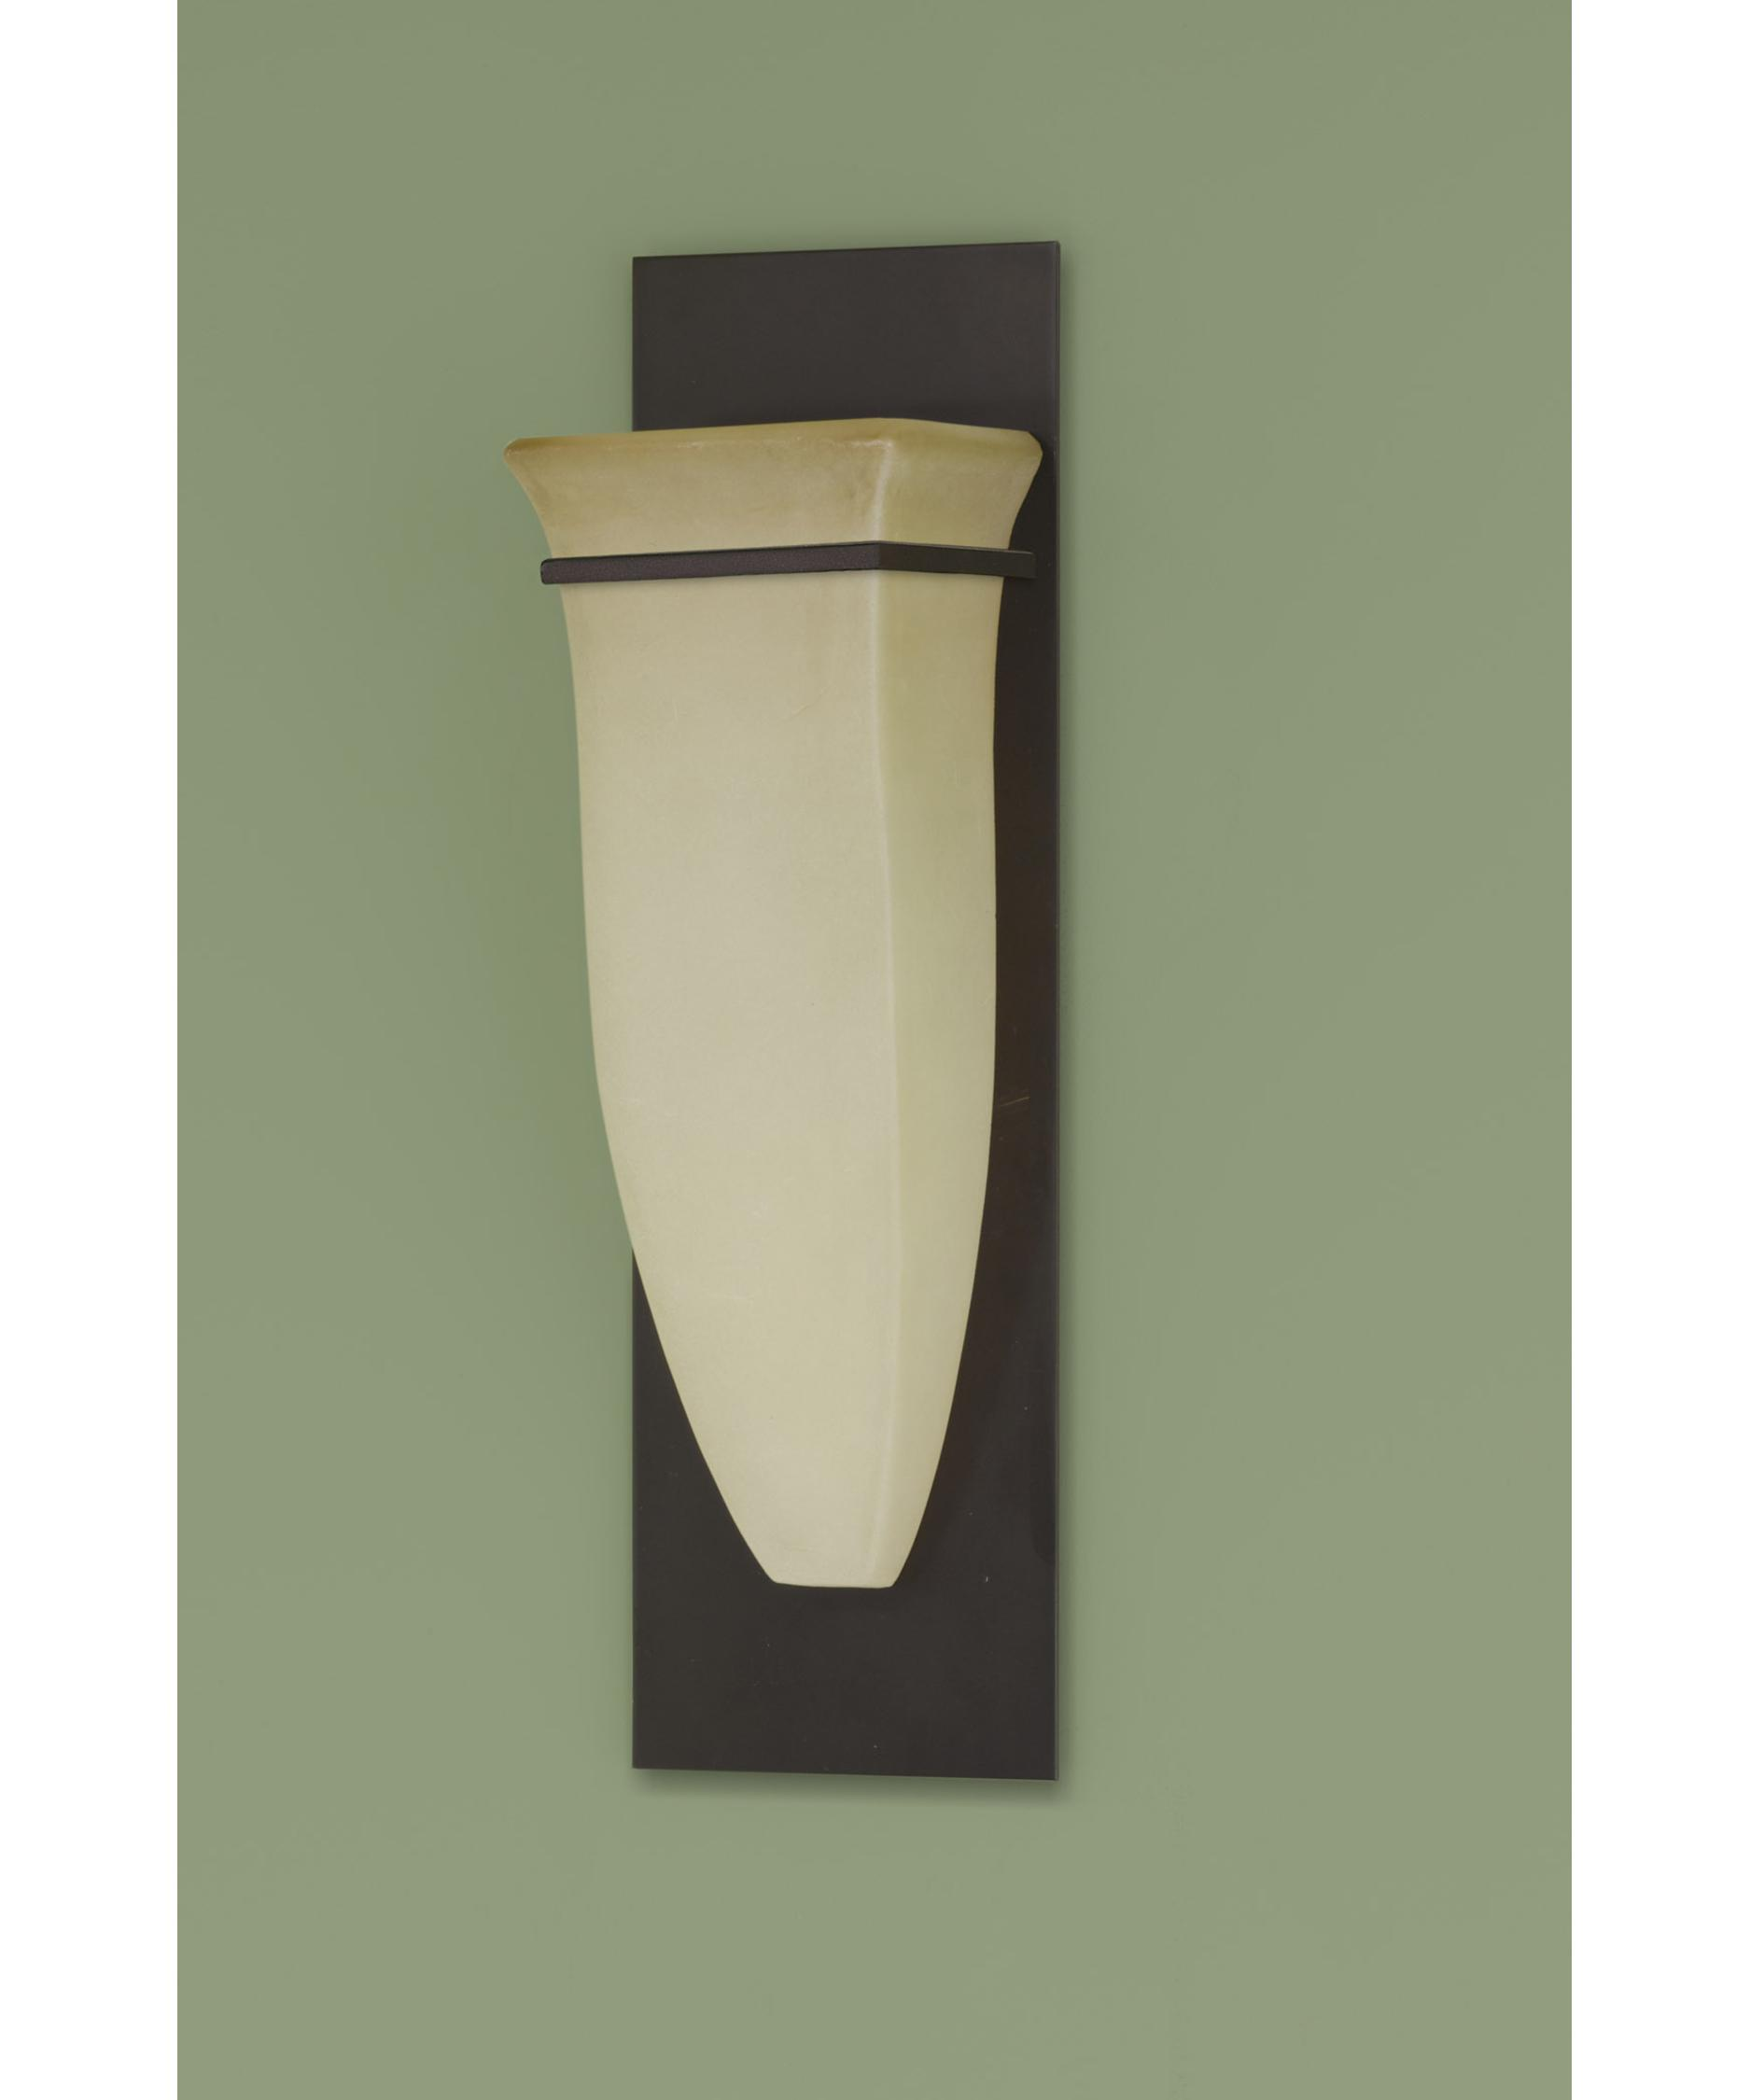 Bathroom Sconces Oil Rubbed Bronze murray feiss wb1329 american foursquare 5 inch wide wall sconce